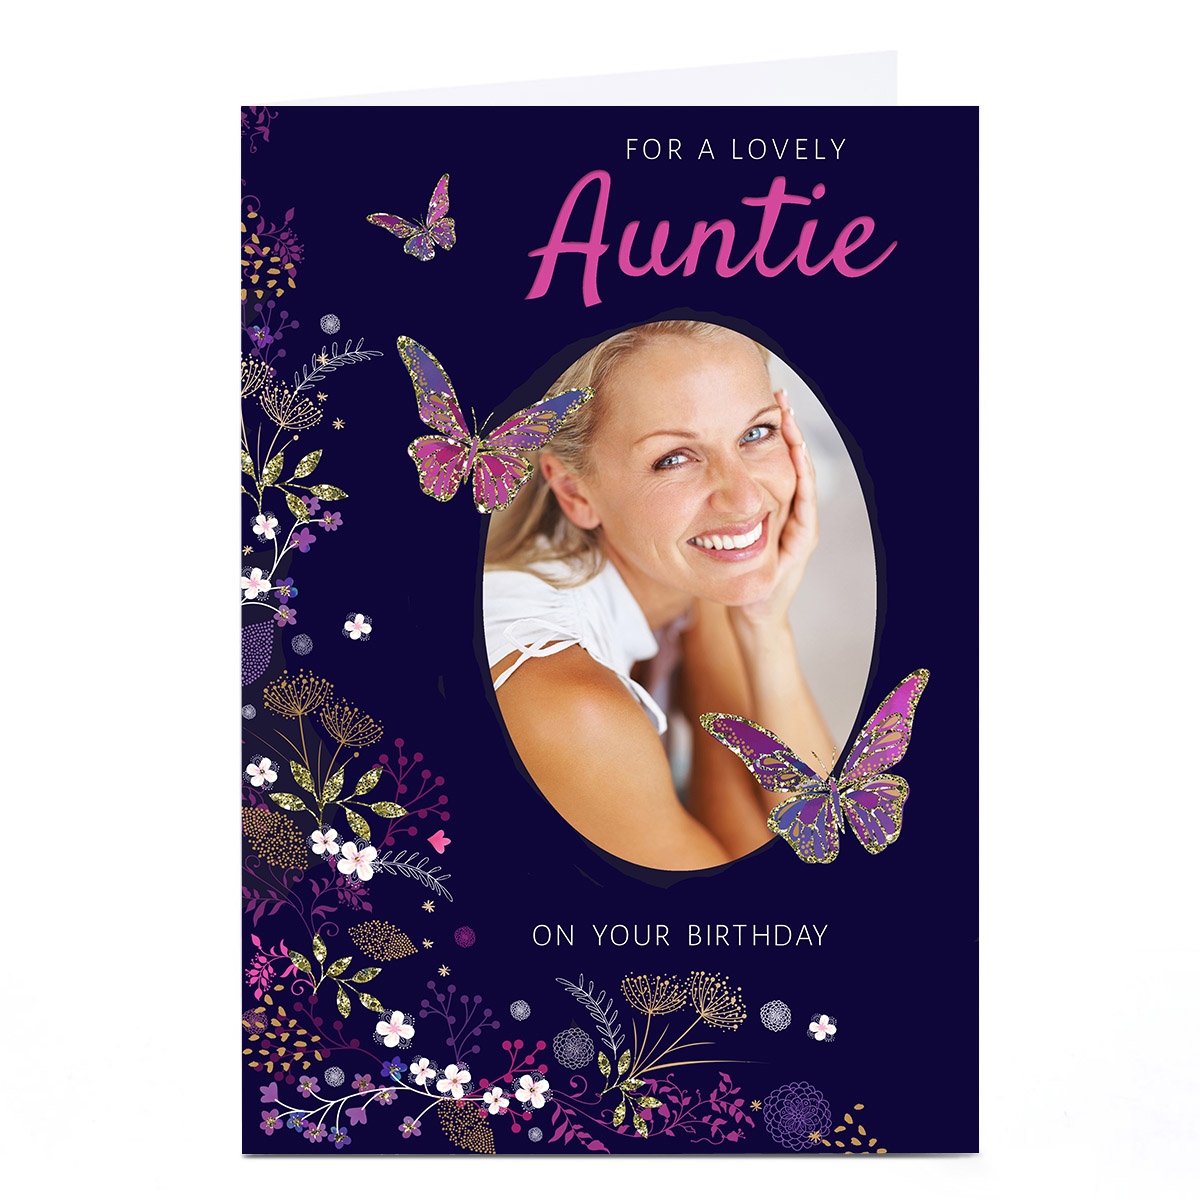 Personalised Kerry Spurling Photo Card - Auntie Upload